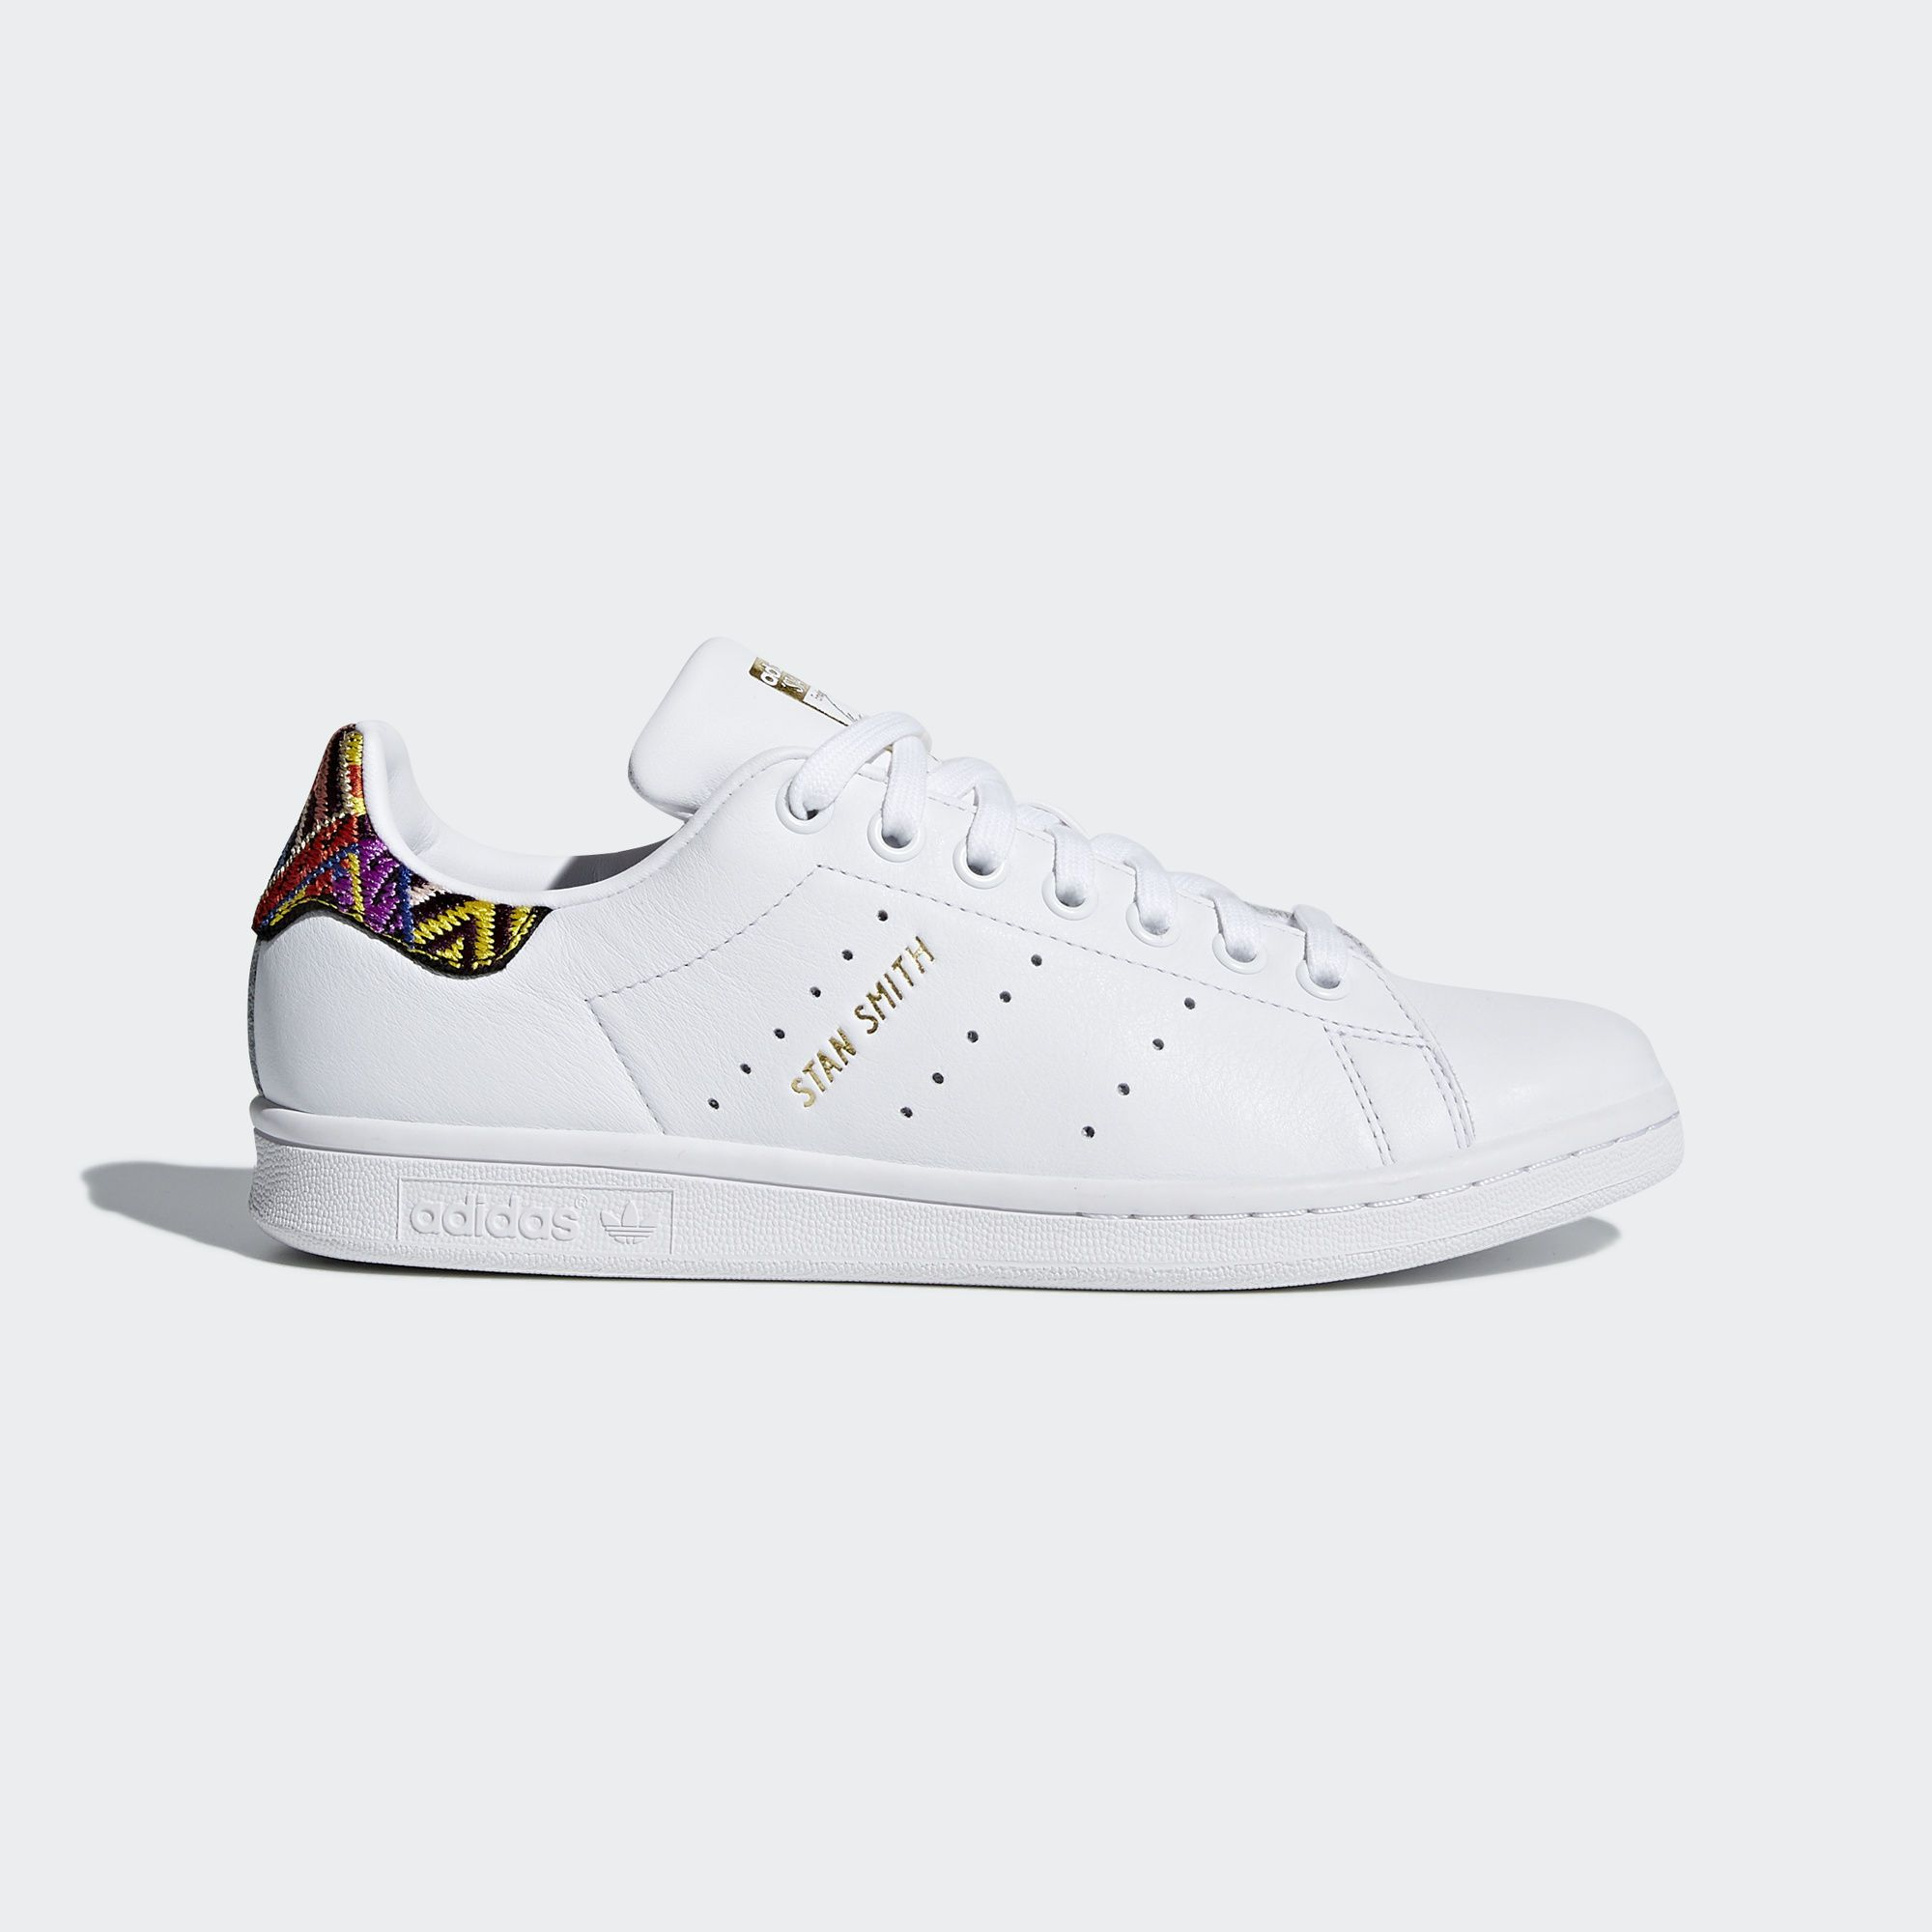 Stan smith shoes, Adidas shoes